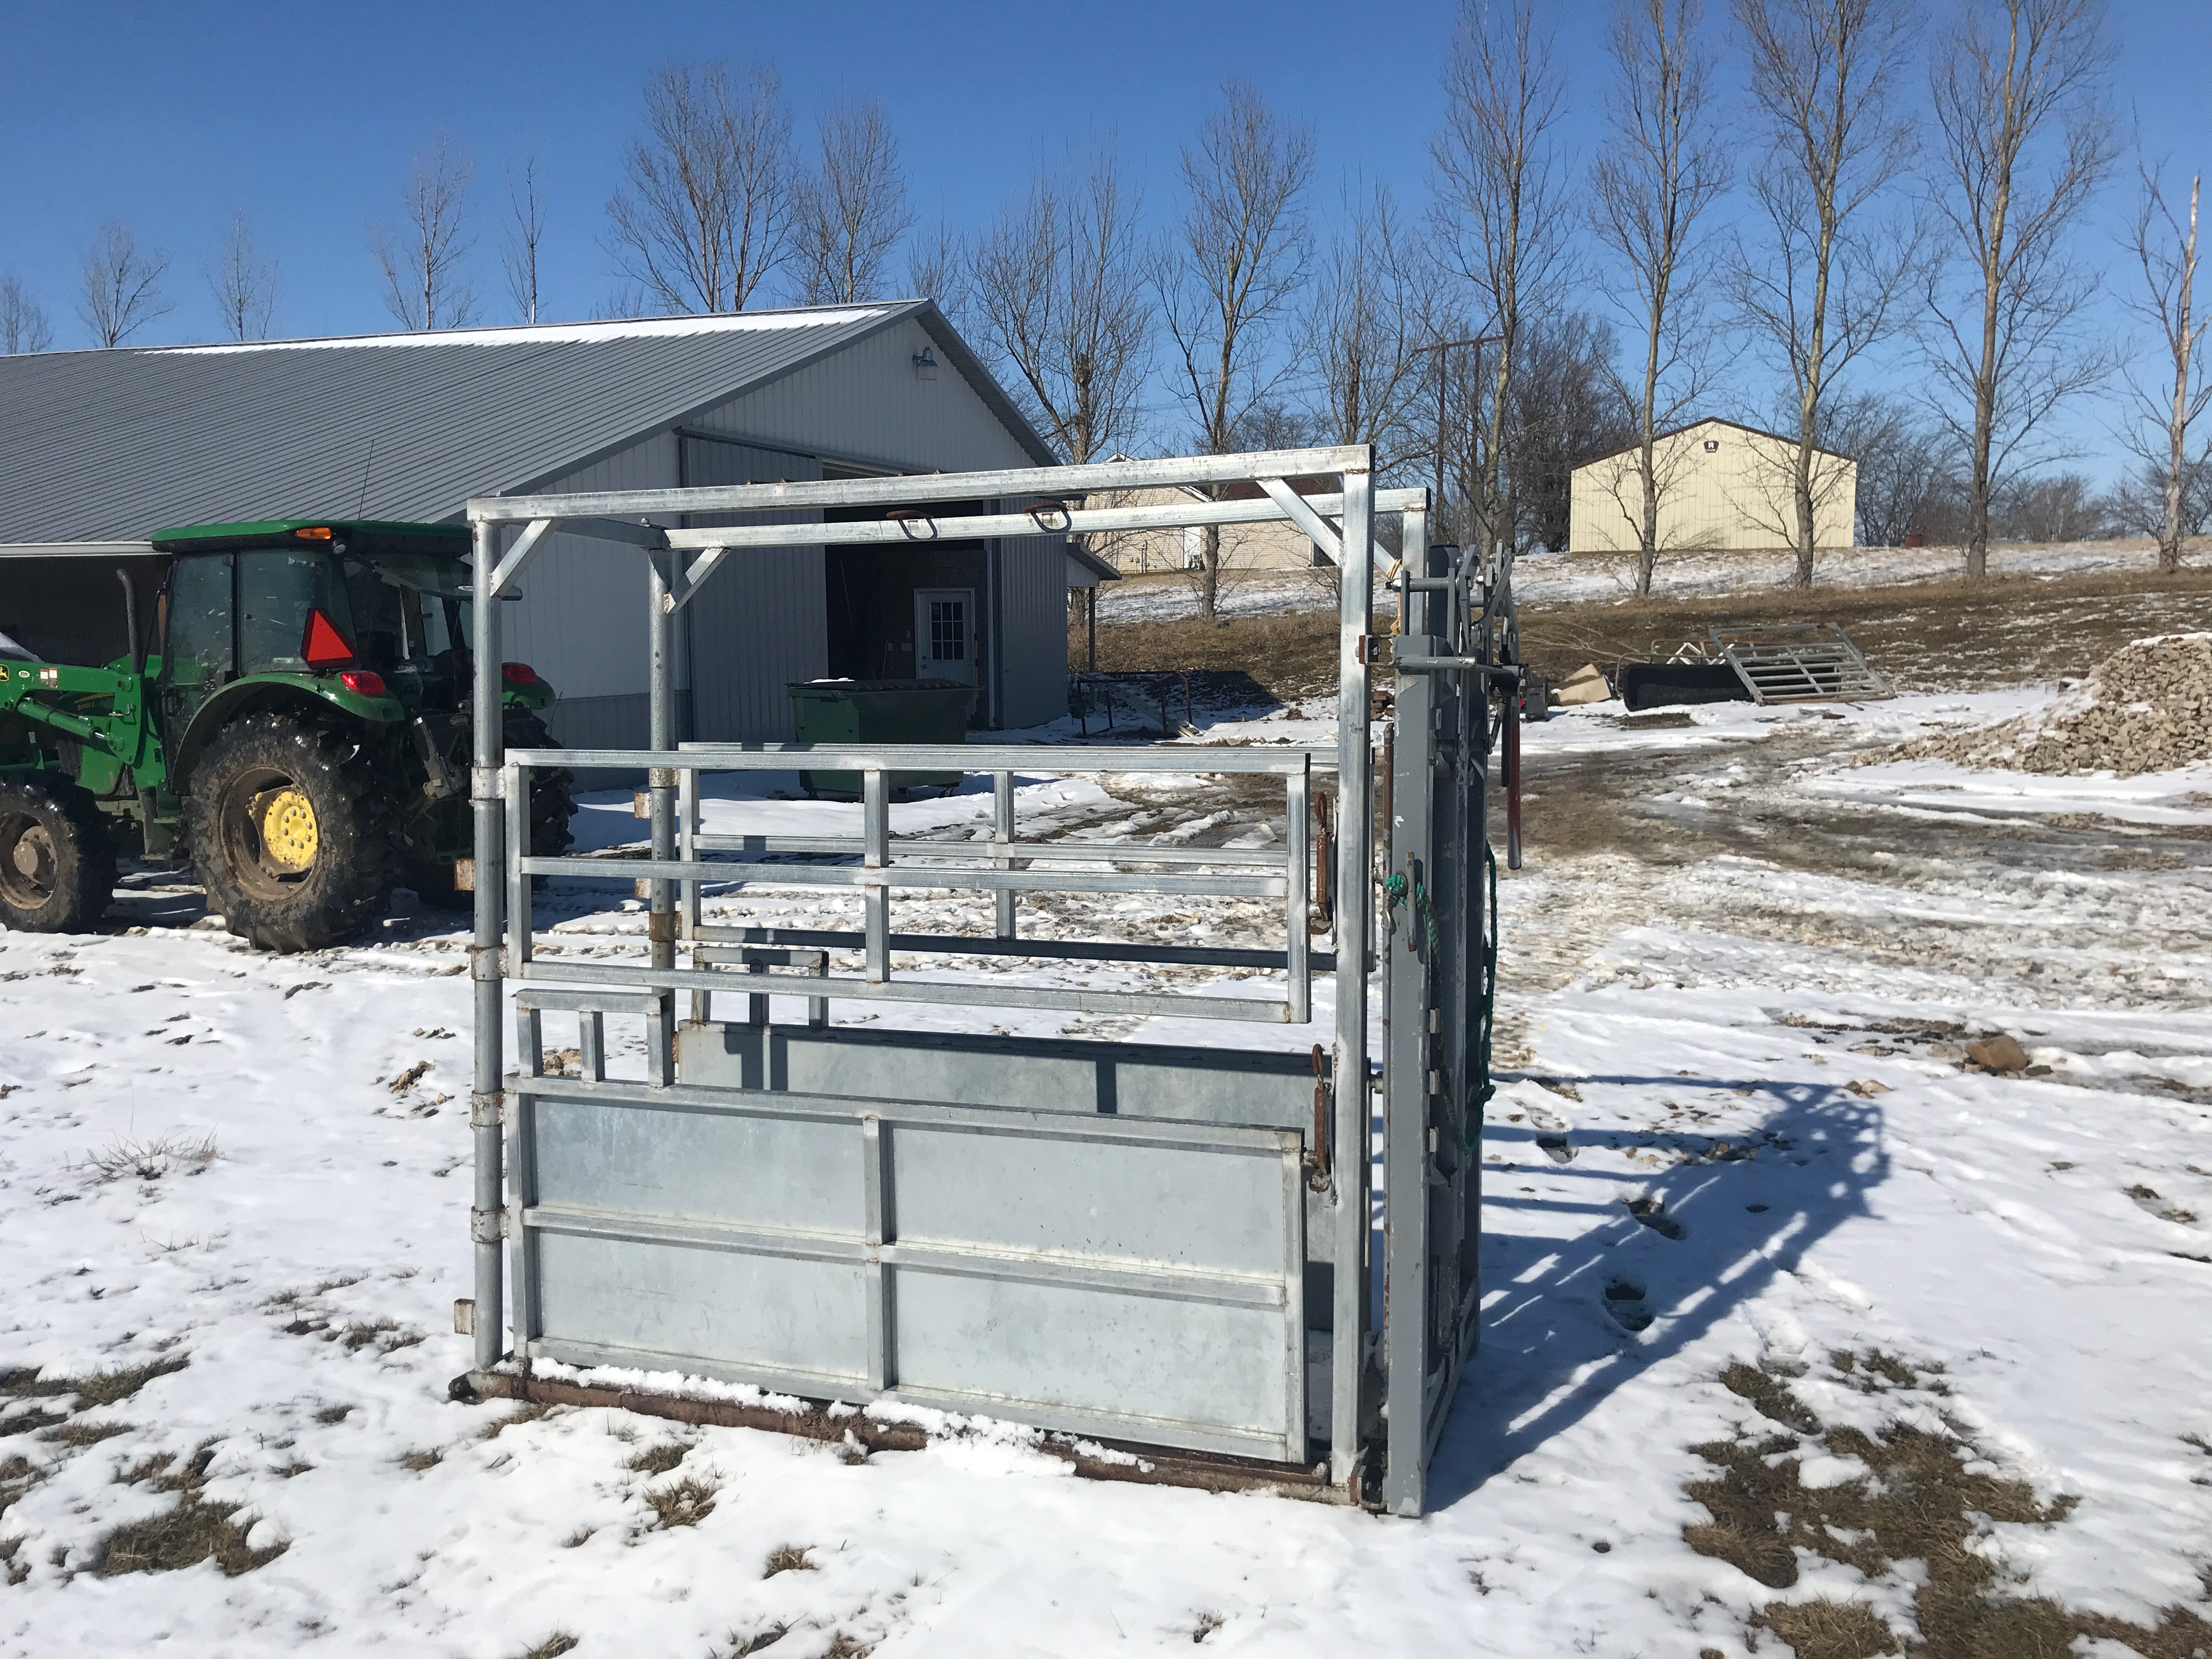 River Rode Cattle Chute, Manual Catch, Double Side Door, Wood Floor, (NICE CONDITION) - Image 3 of 4